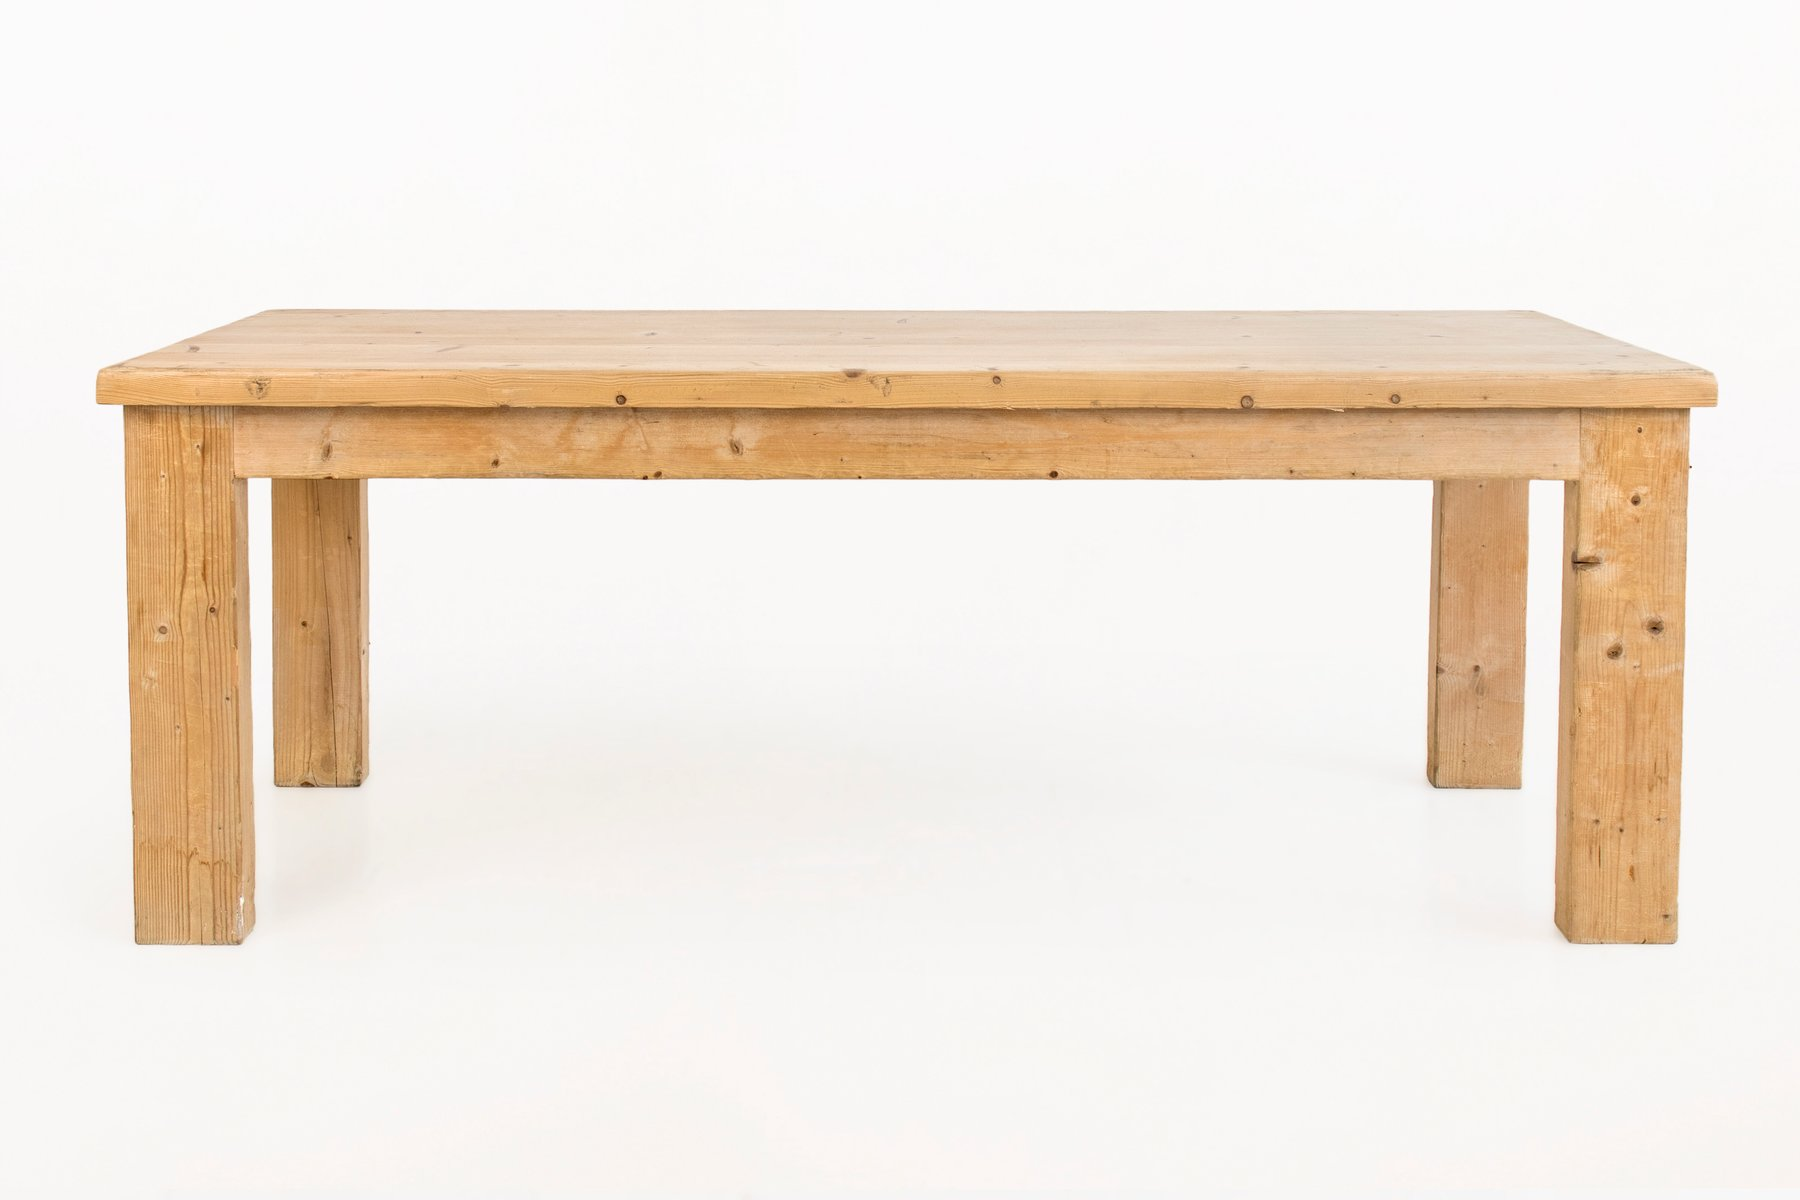 pine dining table by guy rey millet jean prouv 1970s for sale at pamono - Pine Dining Table